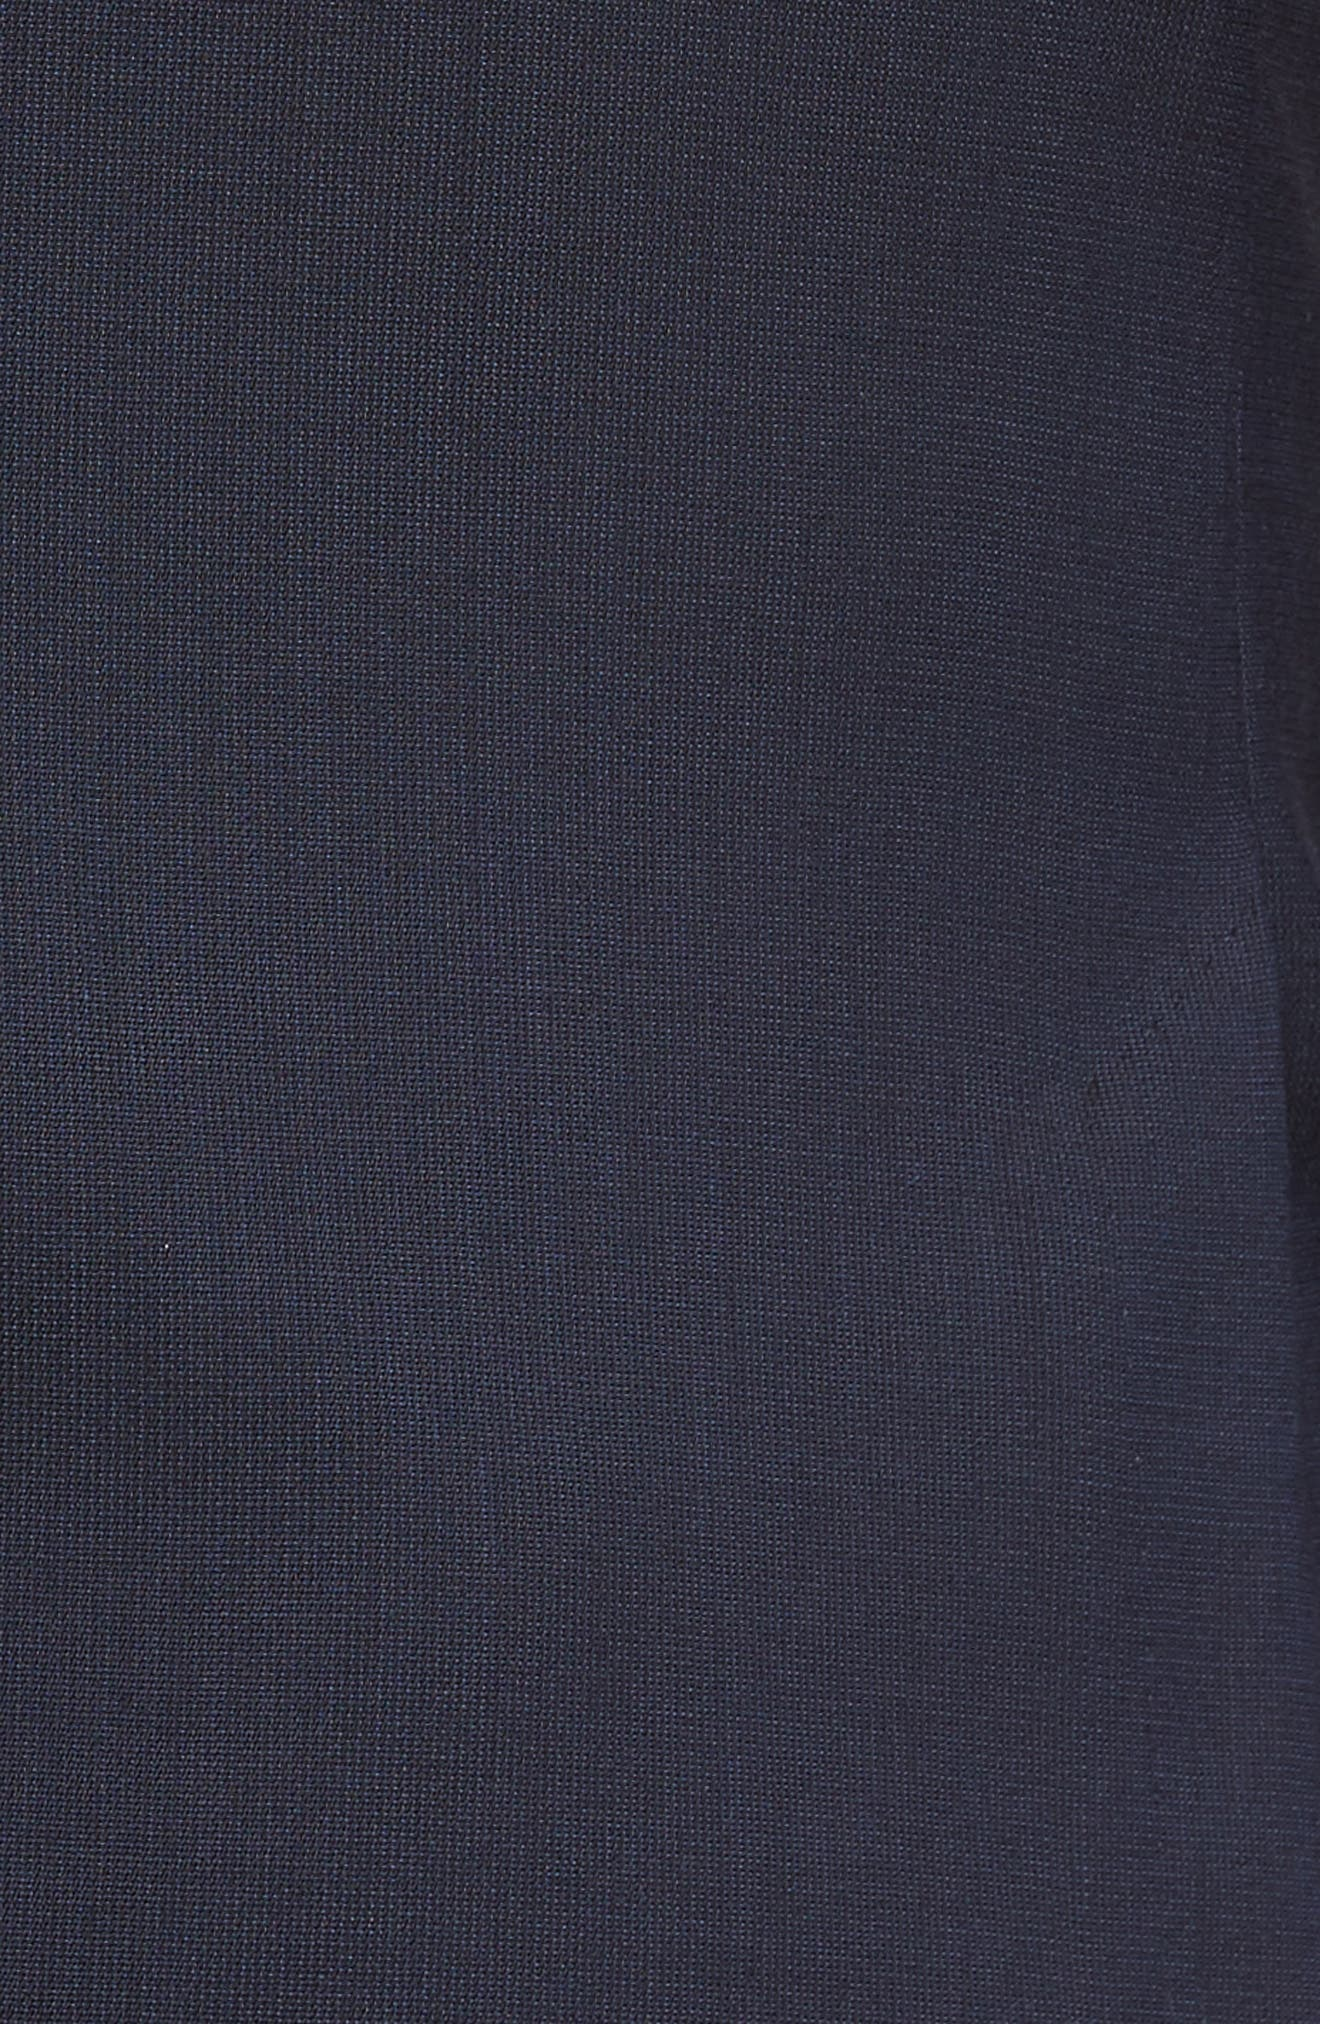 Nylen/Perry Trim Fit Solid Wool Suit,                             Alternate thumbnail 7, color,                             Navy